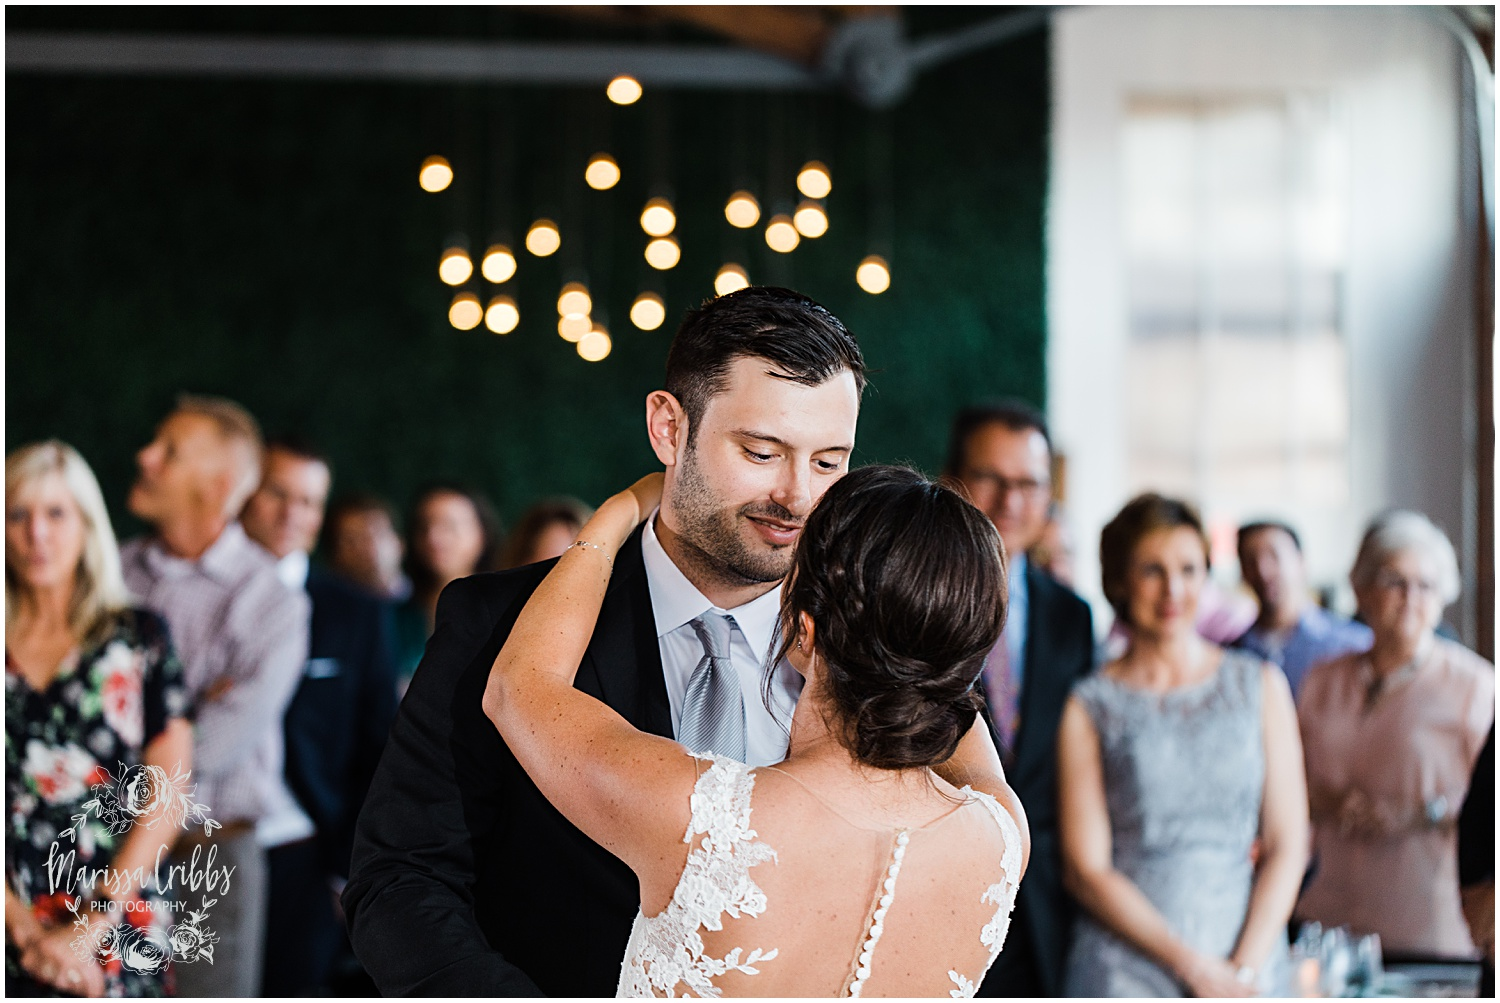 KELLY & MITCH MARRIED BLOG | MARISSA CRIBBS PHOTOGRAPHY | THE EVERLY EVENT SPACE_8903.jpg